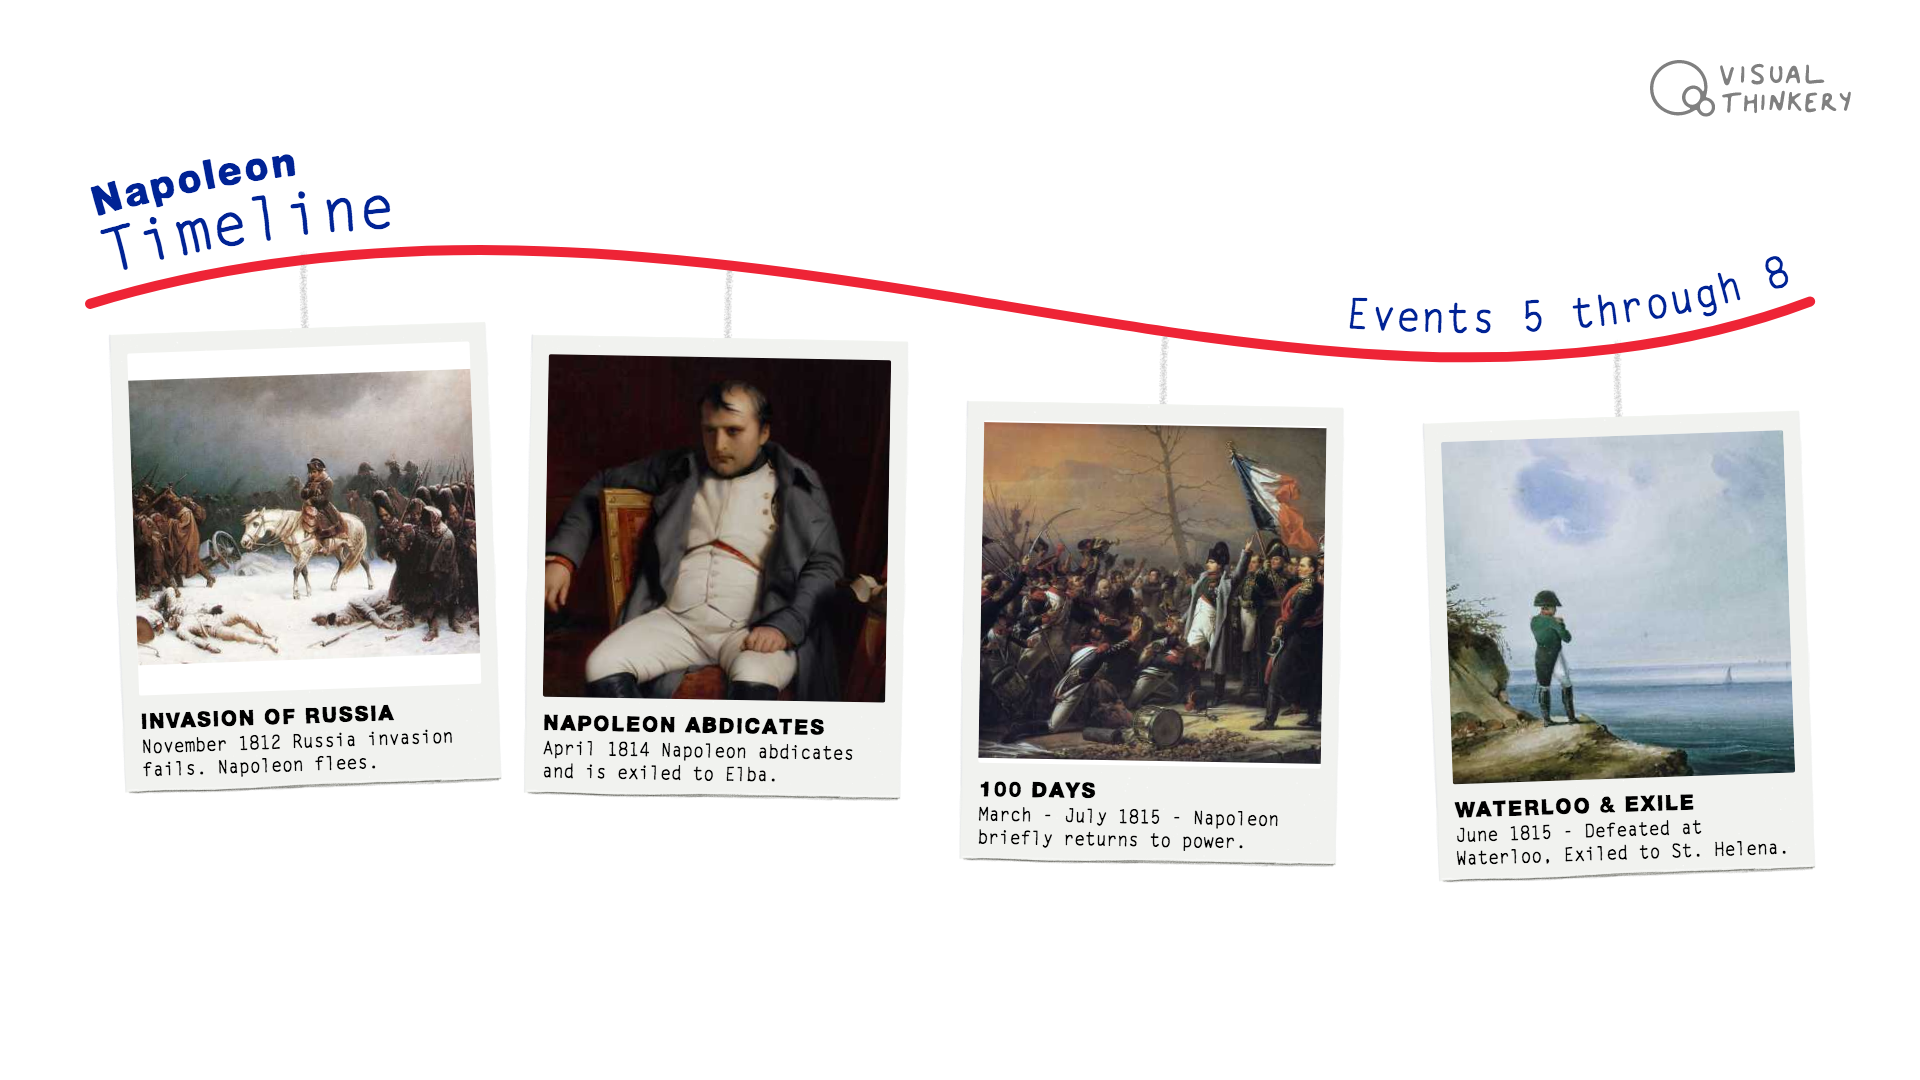 Napoleon Timeline Events 5 through 8